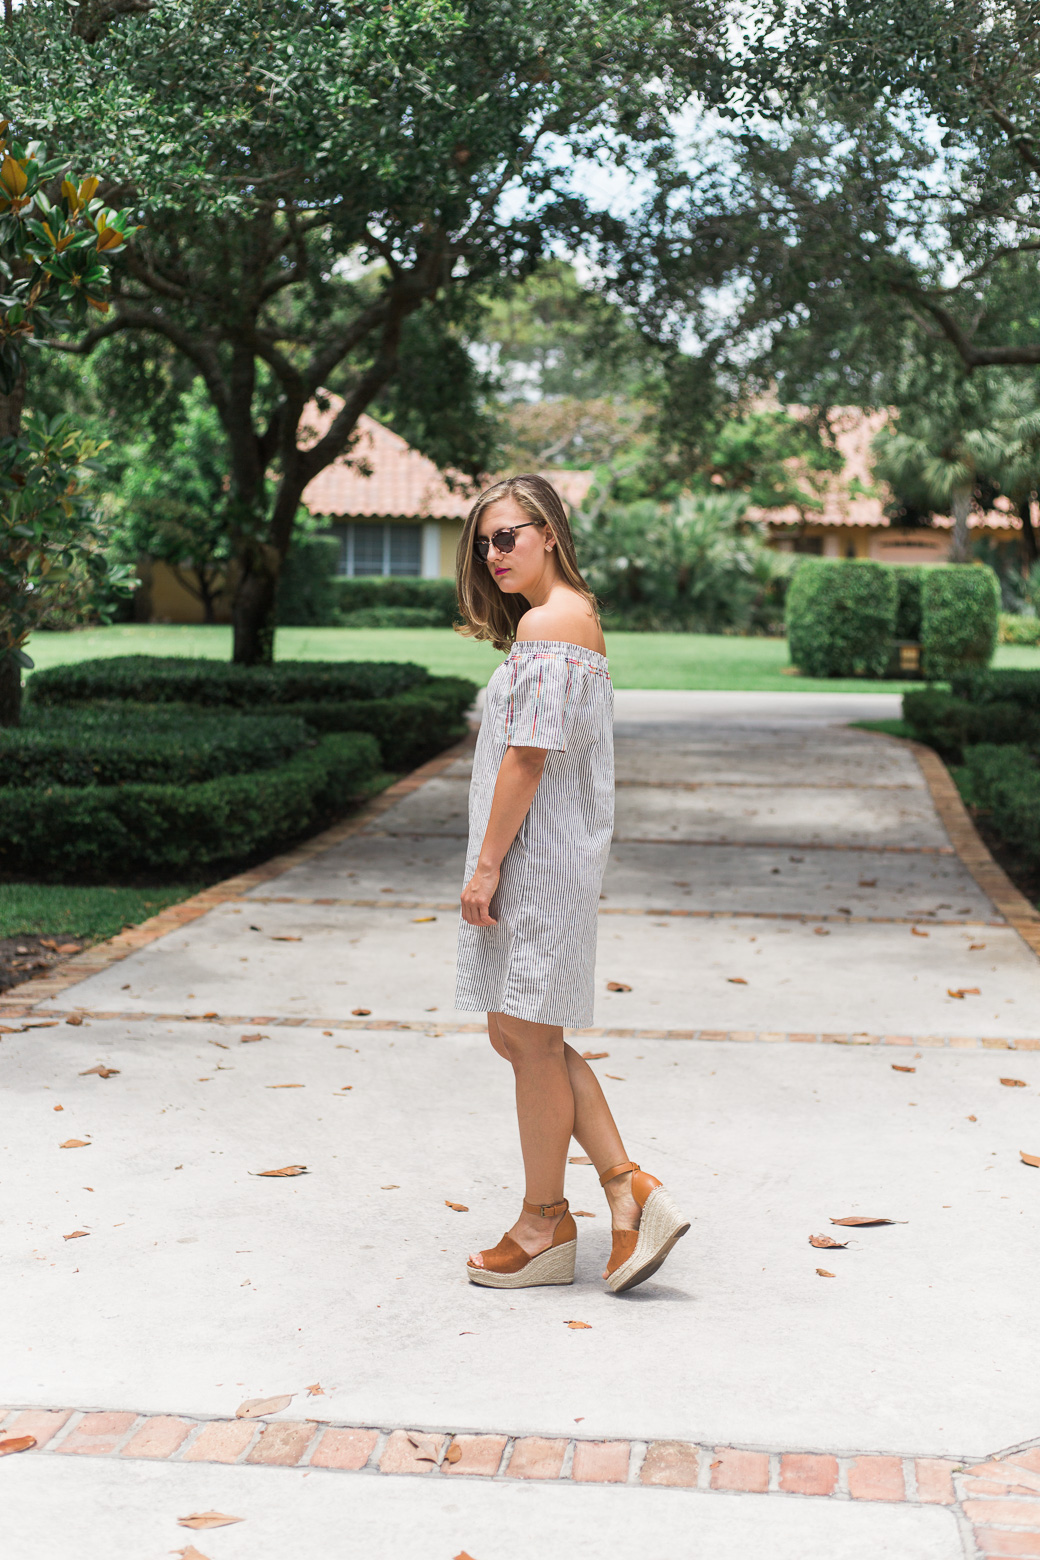 My Reflection on Junior year of college part two, a fashion post with an embroidered OTS dress from target on sweetlysally.com